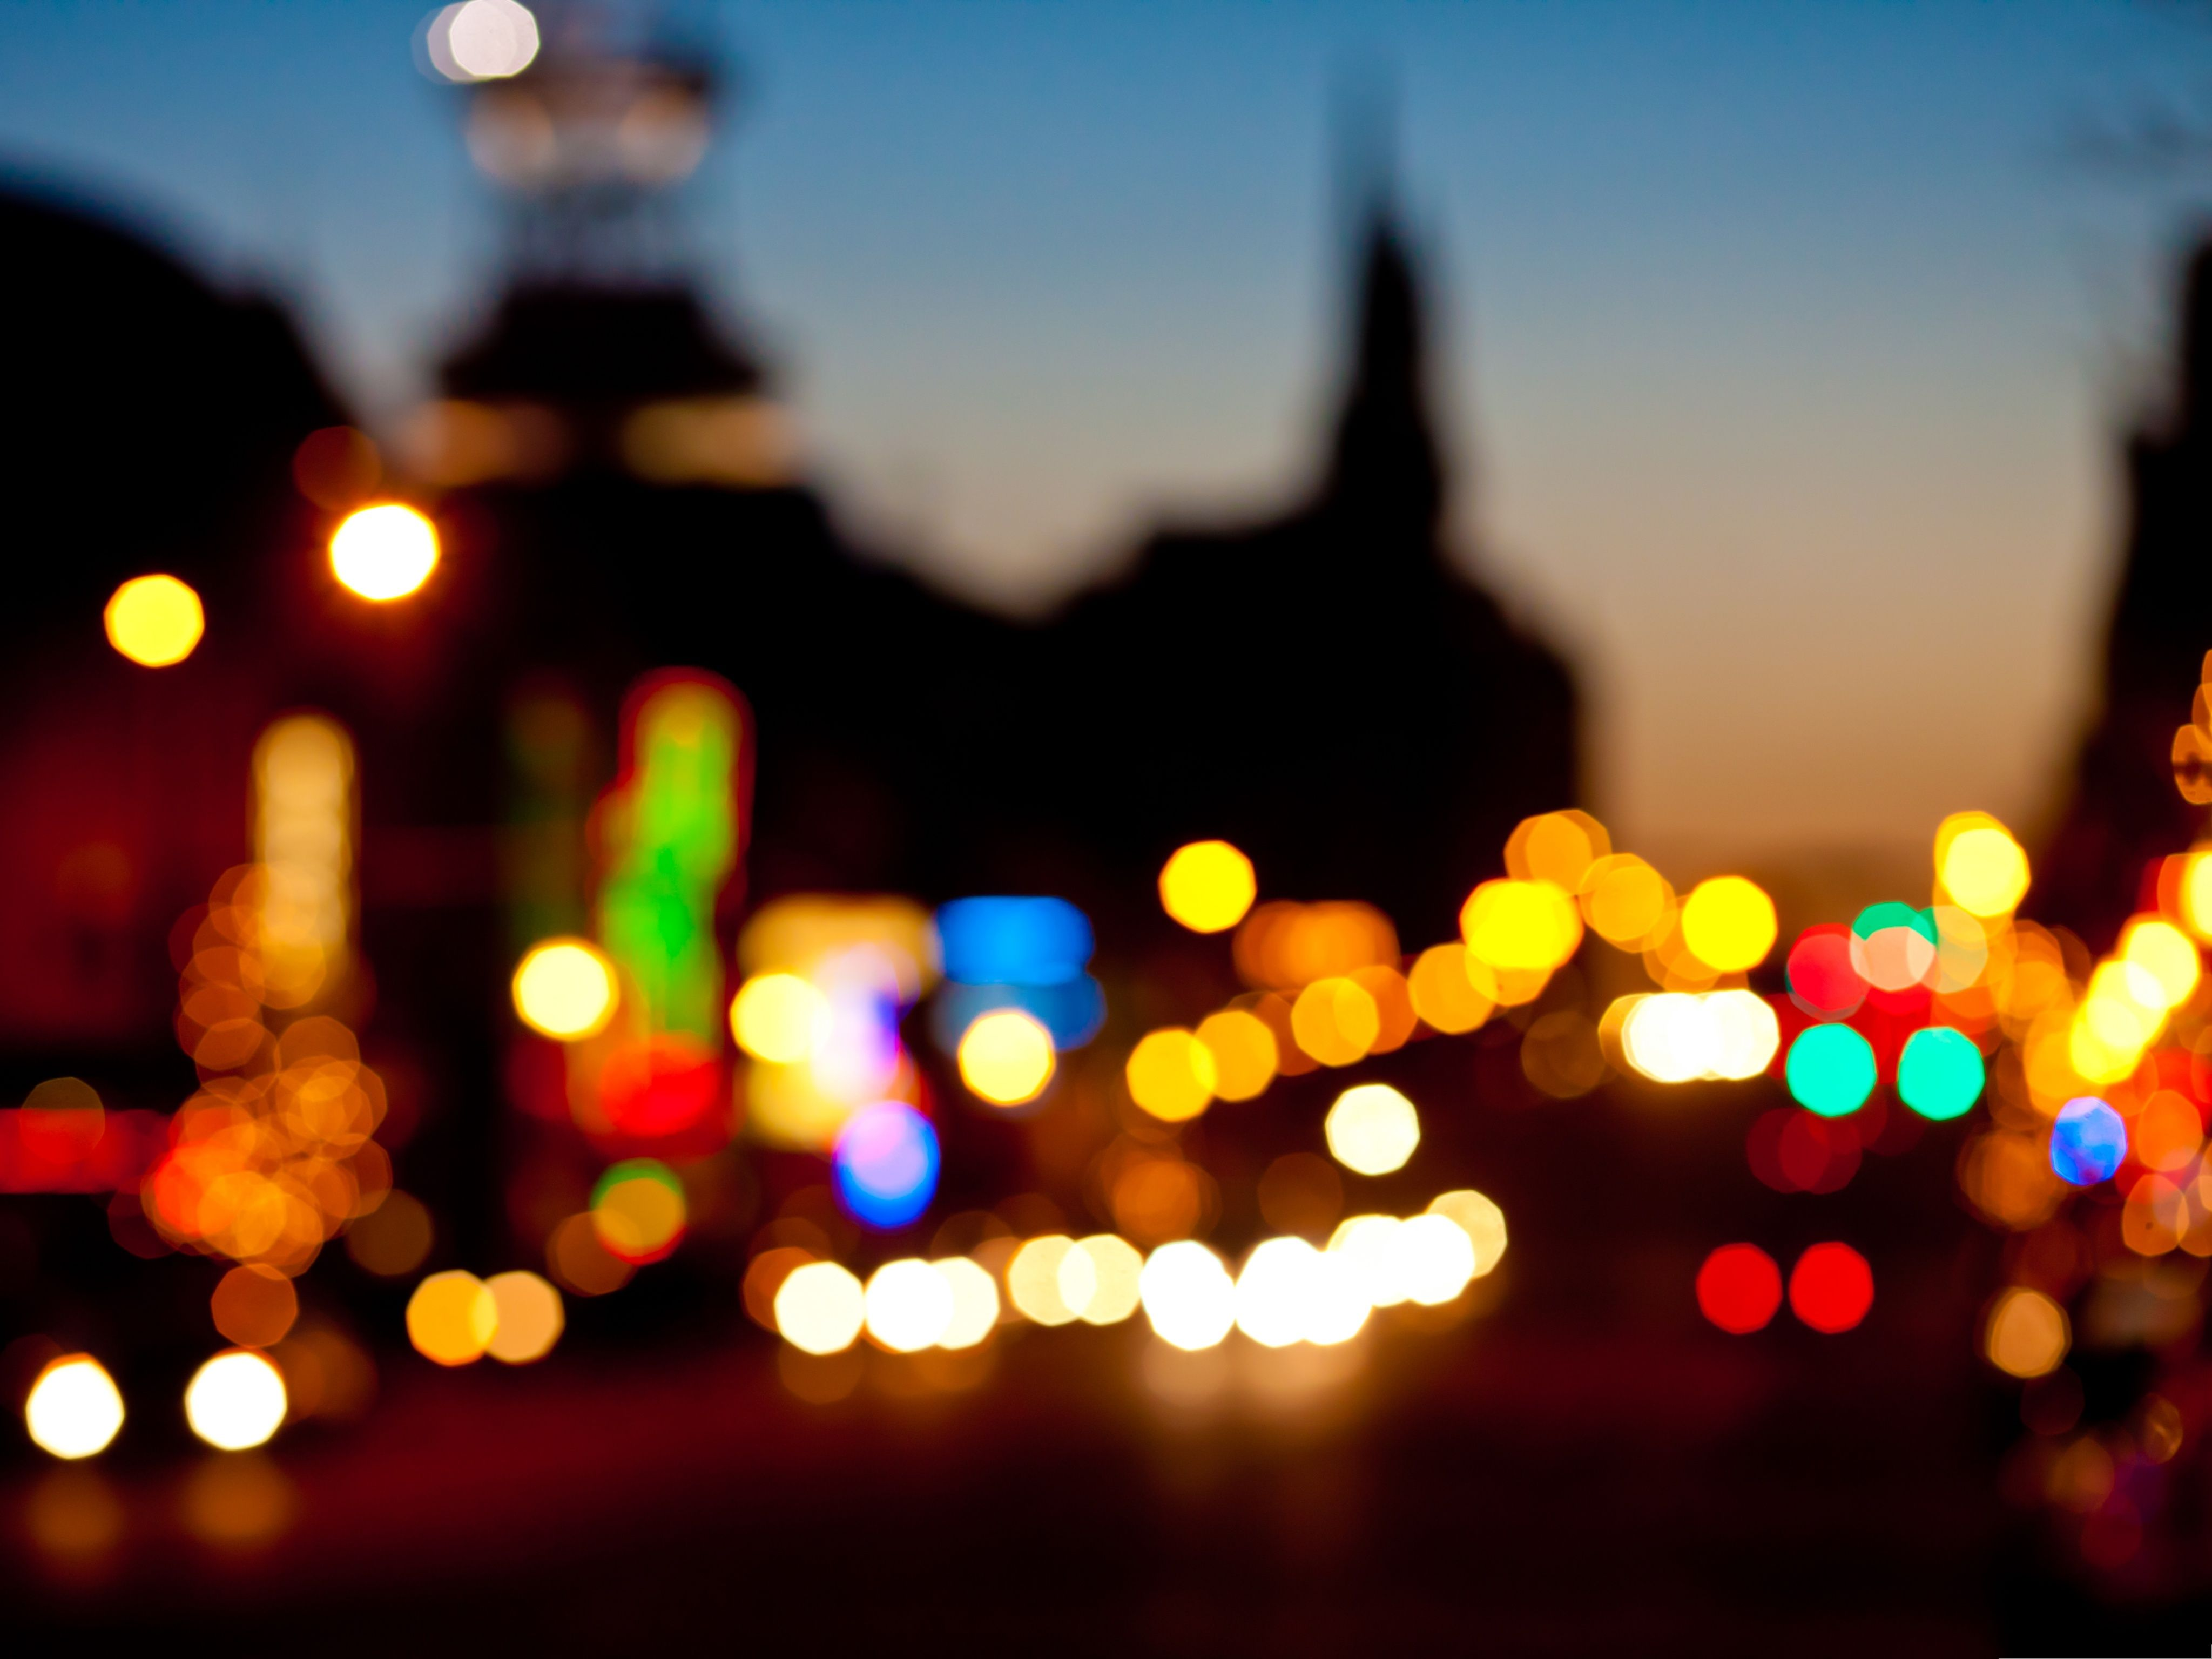 Wallpapers and Backgrounds Night Car Lights Bokeh Effect 4096x3072